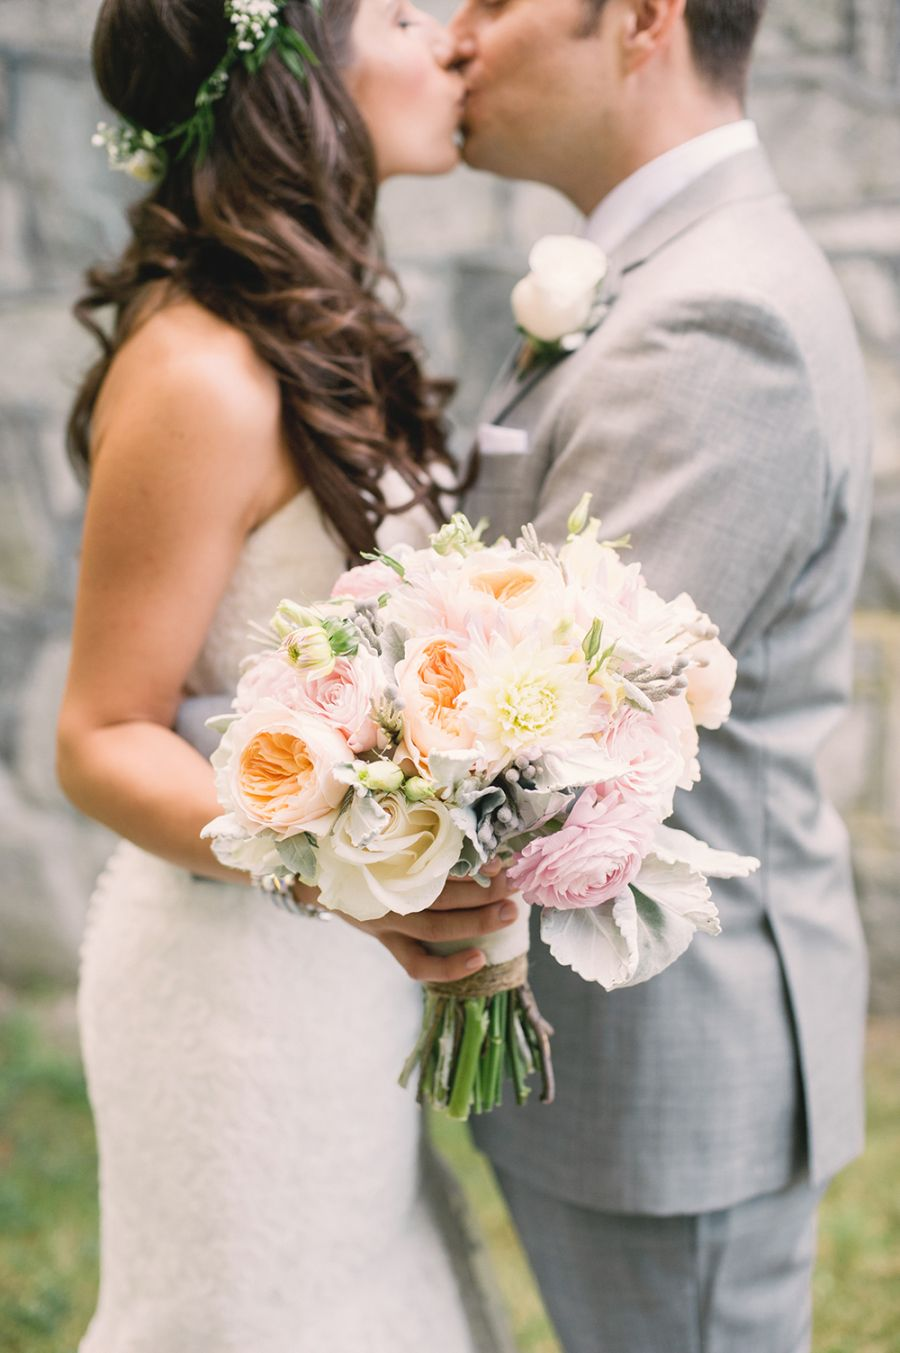 Whimsical meets Rustic Garden Wedding in Canada (With